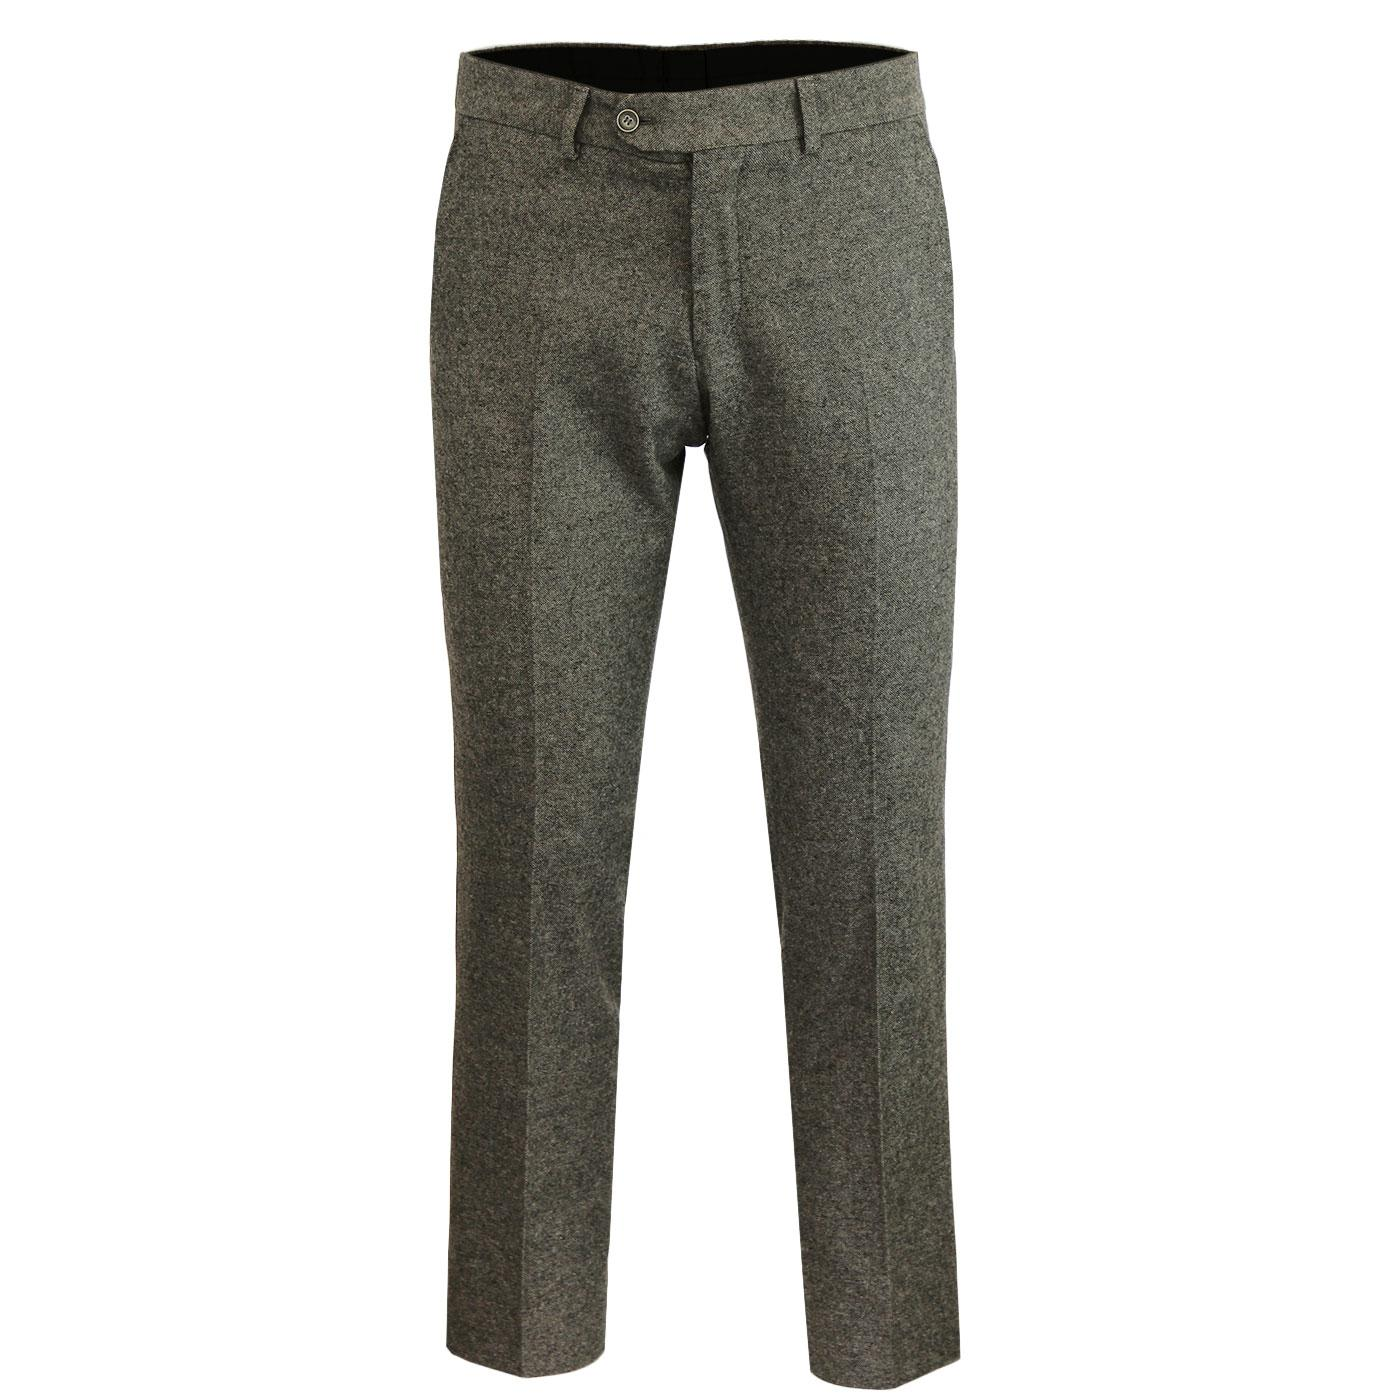 Men's Retro Mod Slim Taupe Donegal Suit Trousers